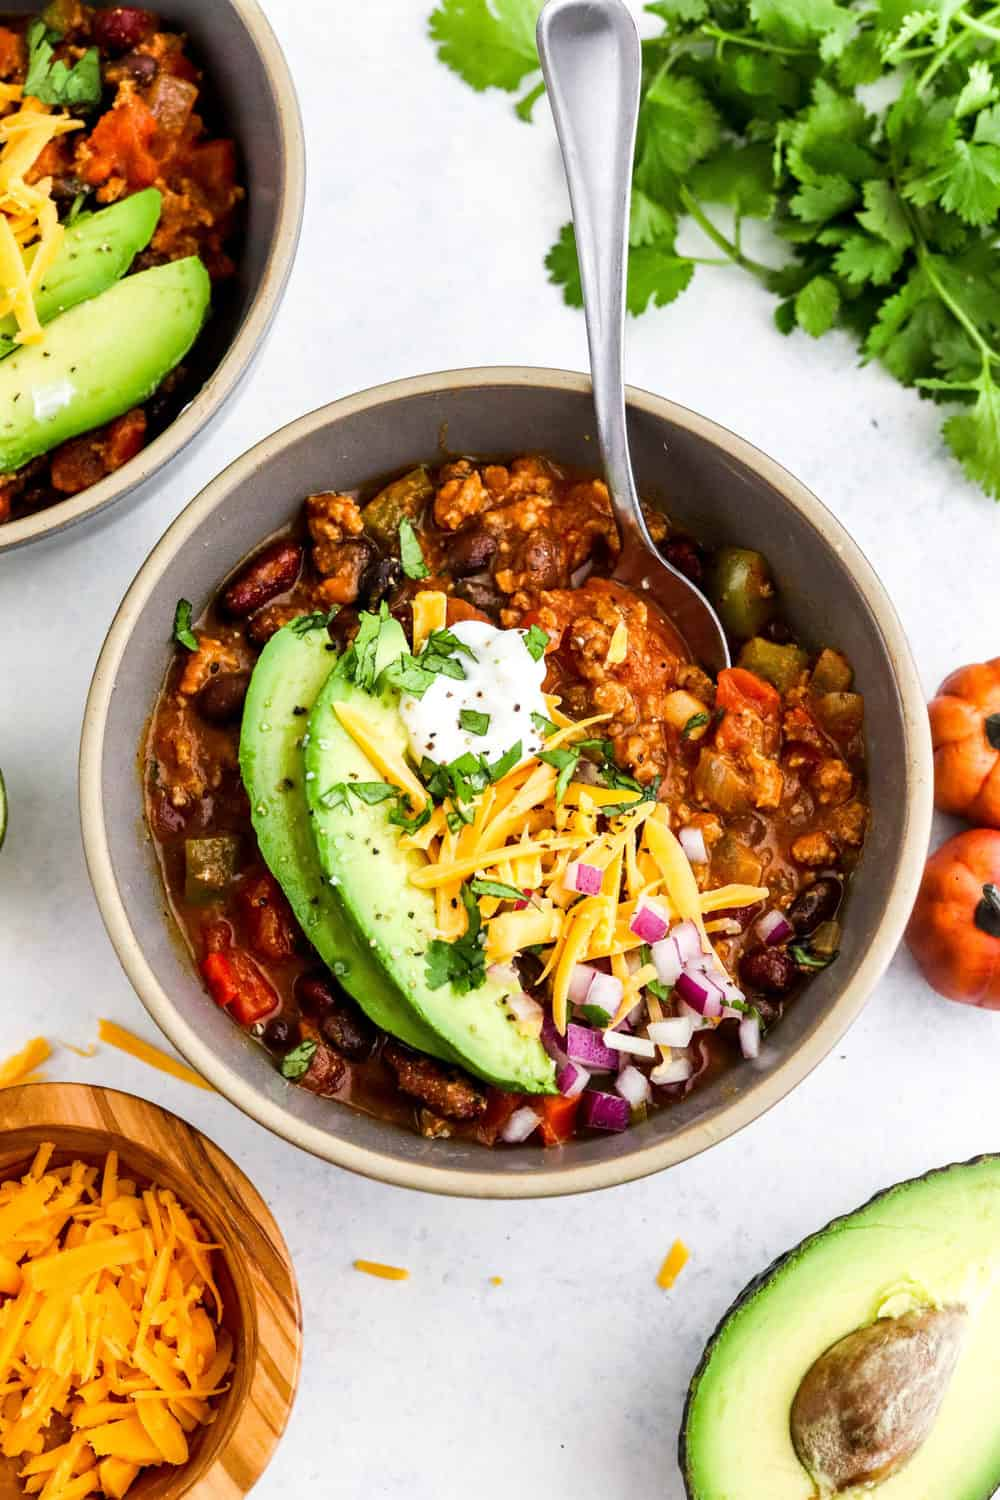 Round dark grey bowl filled with chili with a spoon in it with sliced avocado, shredded cheese and onions on top with another bowl of chili and bunch of cilantro behind it.